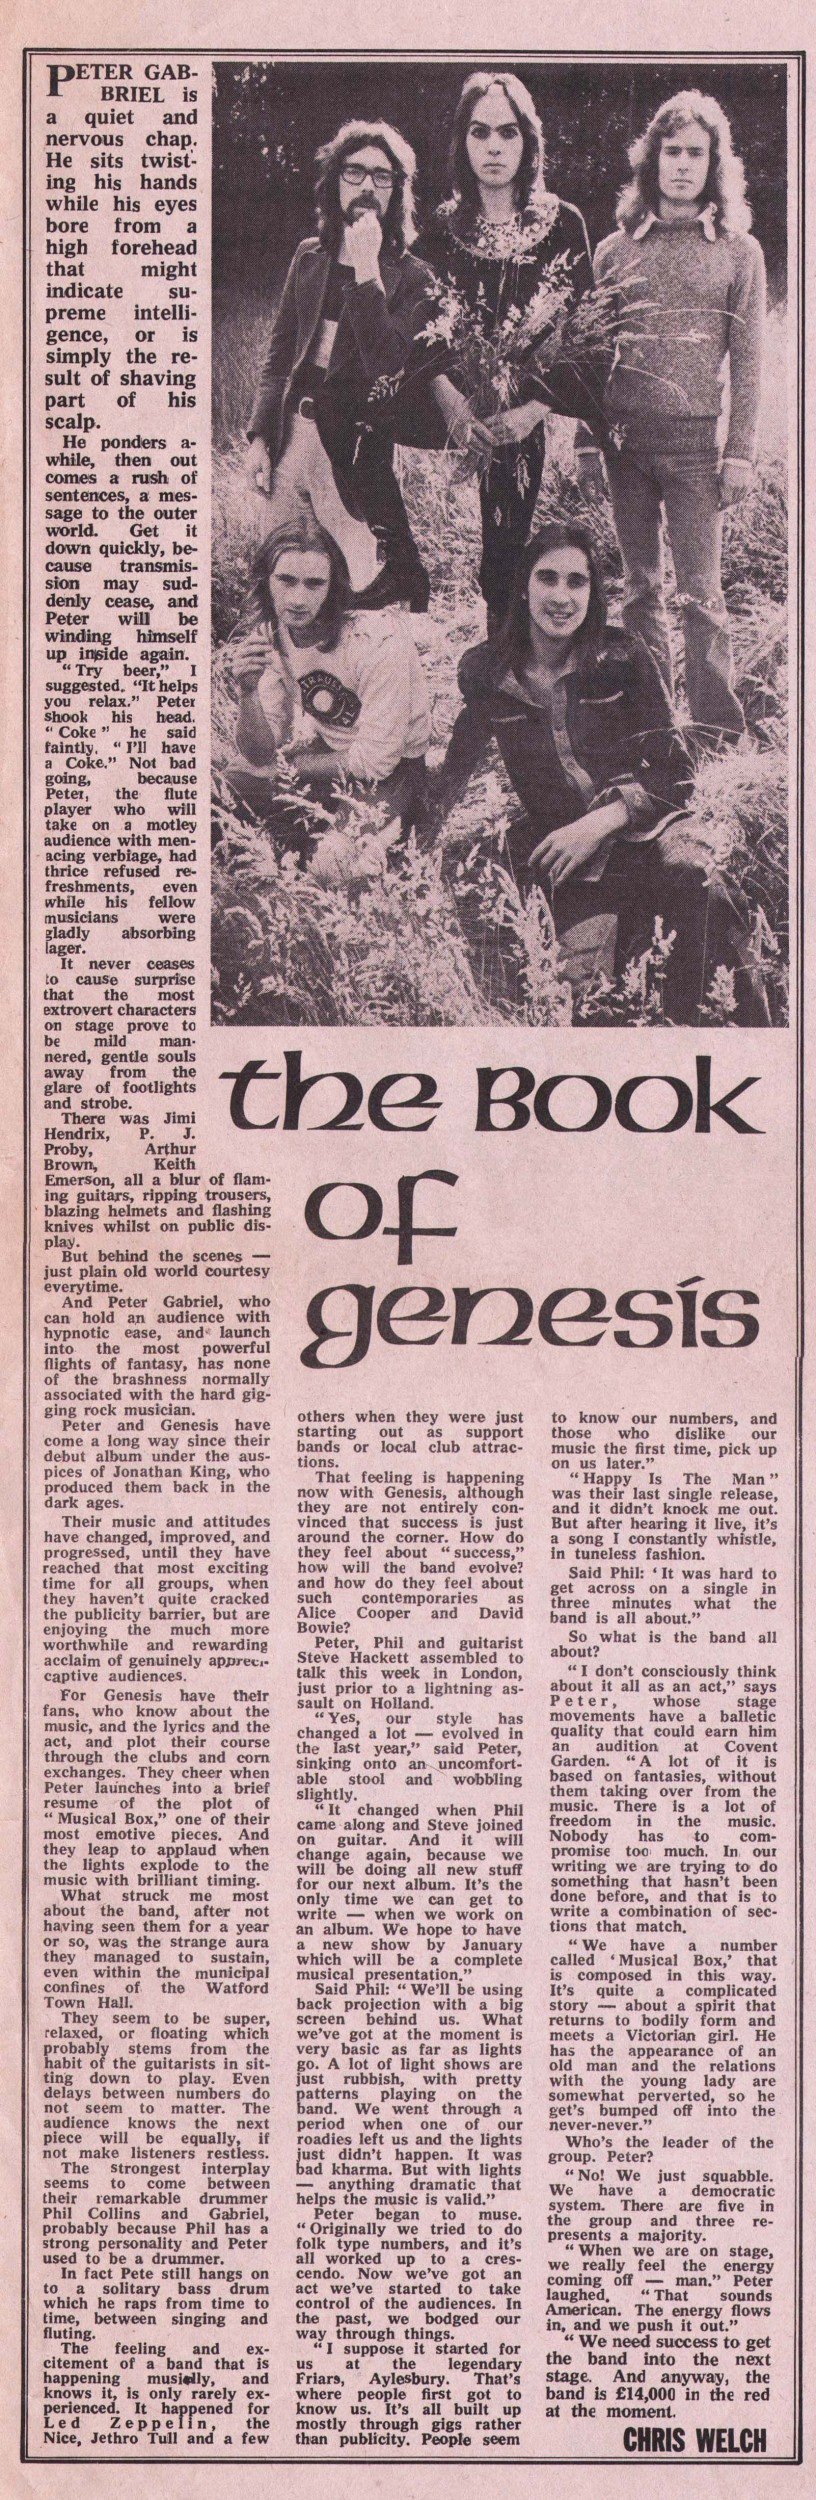 "genesis happy the man single Melody maker 3rd june 1972, in the pop / new singles section, chris welch reviews the genesis single ""happy the man"" the review has been photoshopped to appear as one otherwise you would have seen the bottom two or three sentences at the foot of the page and the remainder of the review at the very top of the page."